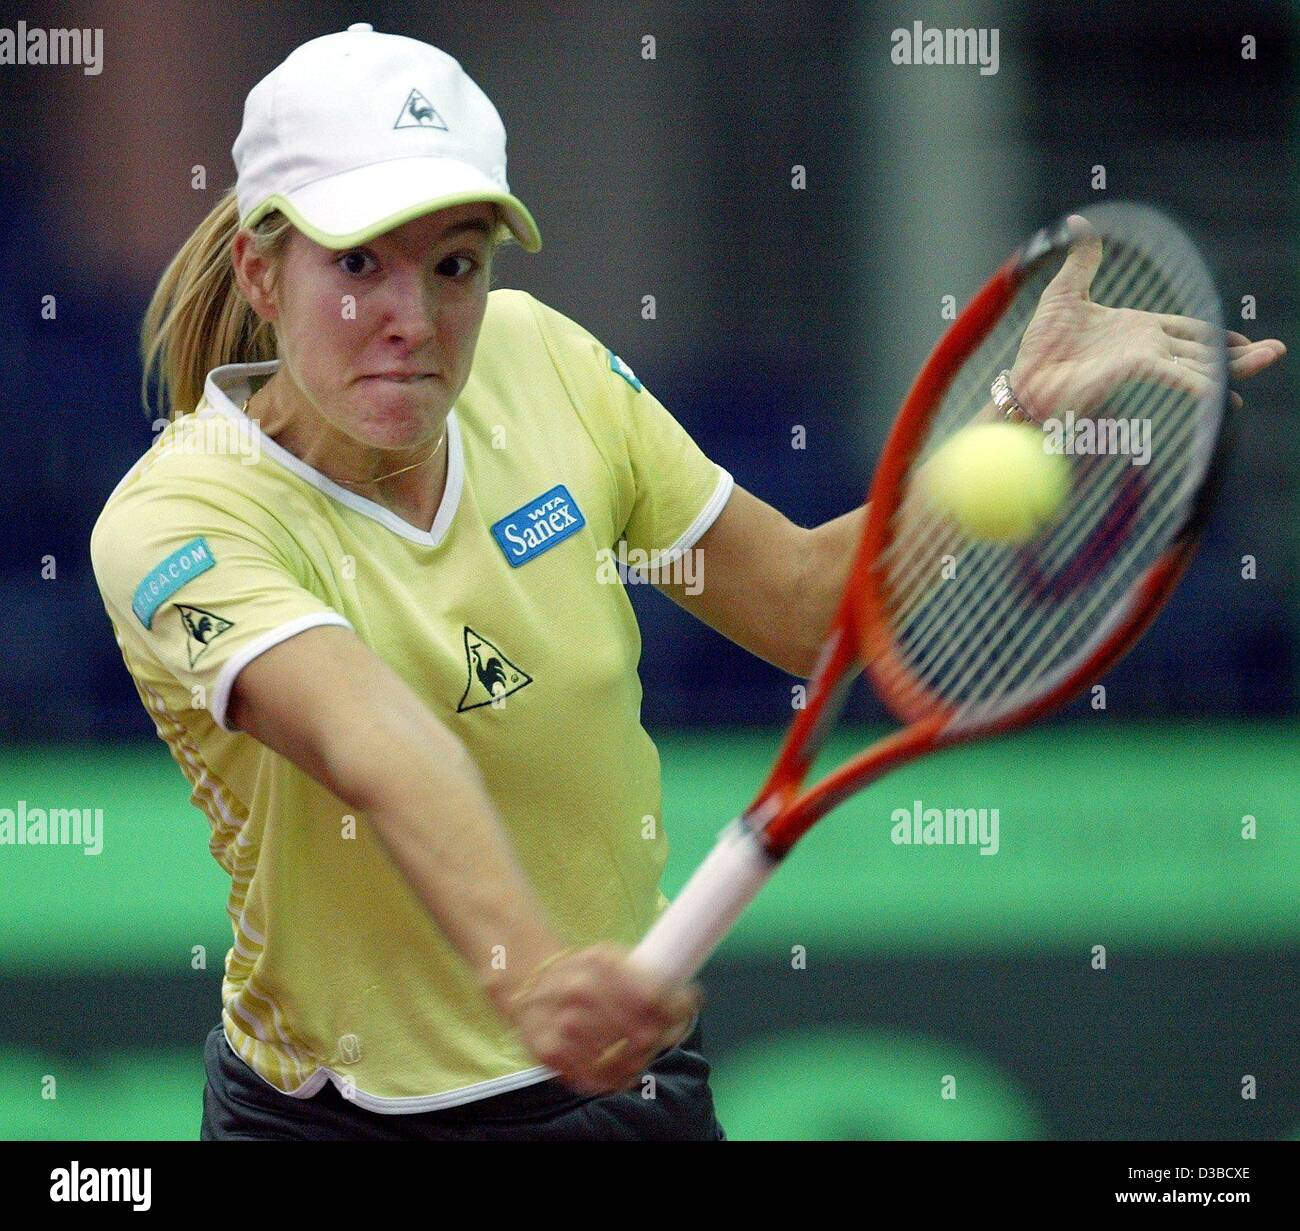 dpa Belgium s Justine Henin plays a backhand during the eighth